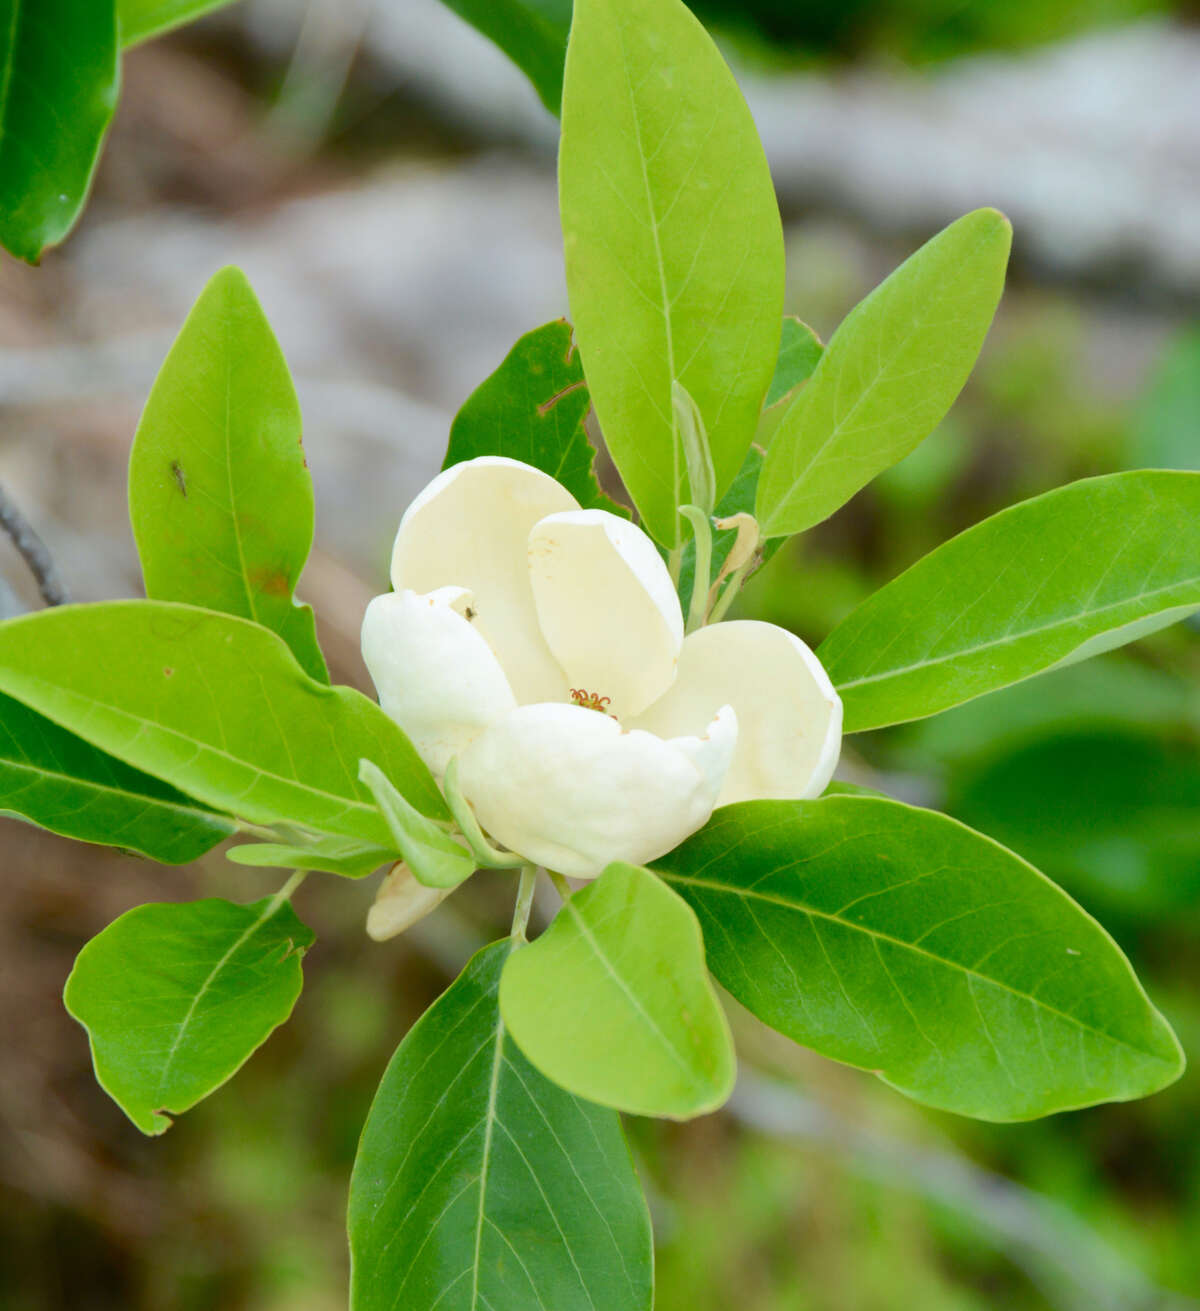 """The sweet bay magnolia is the best magnolia for the Northeast, says Julianne Klasen-Daoud, store manager at Phantom Gardener in Rhinebeck. """"It blooms later than a lot of the southern magnolias"""" - in early summer rather than spring - and it """"goes for quite a while."""""""